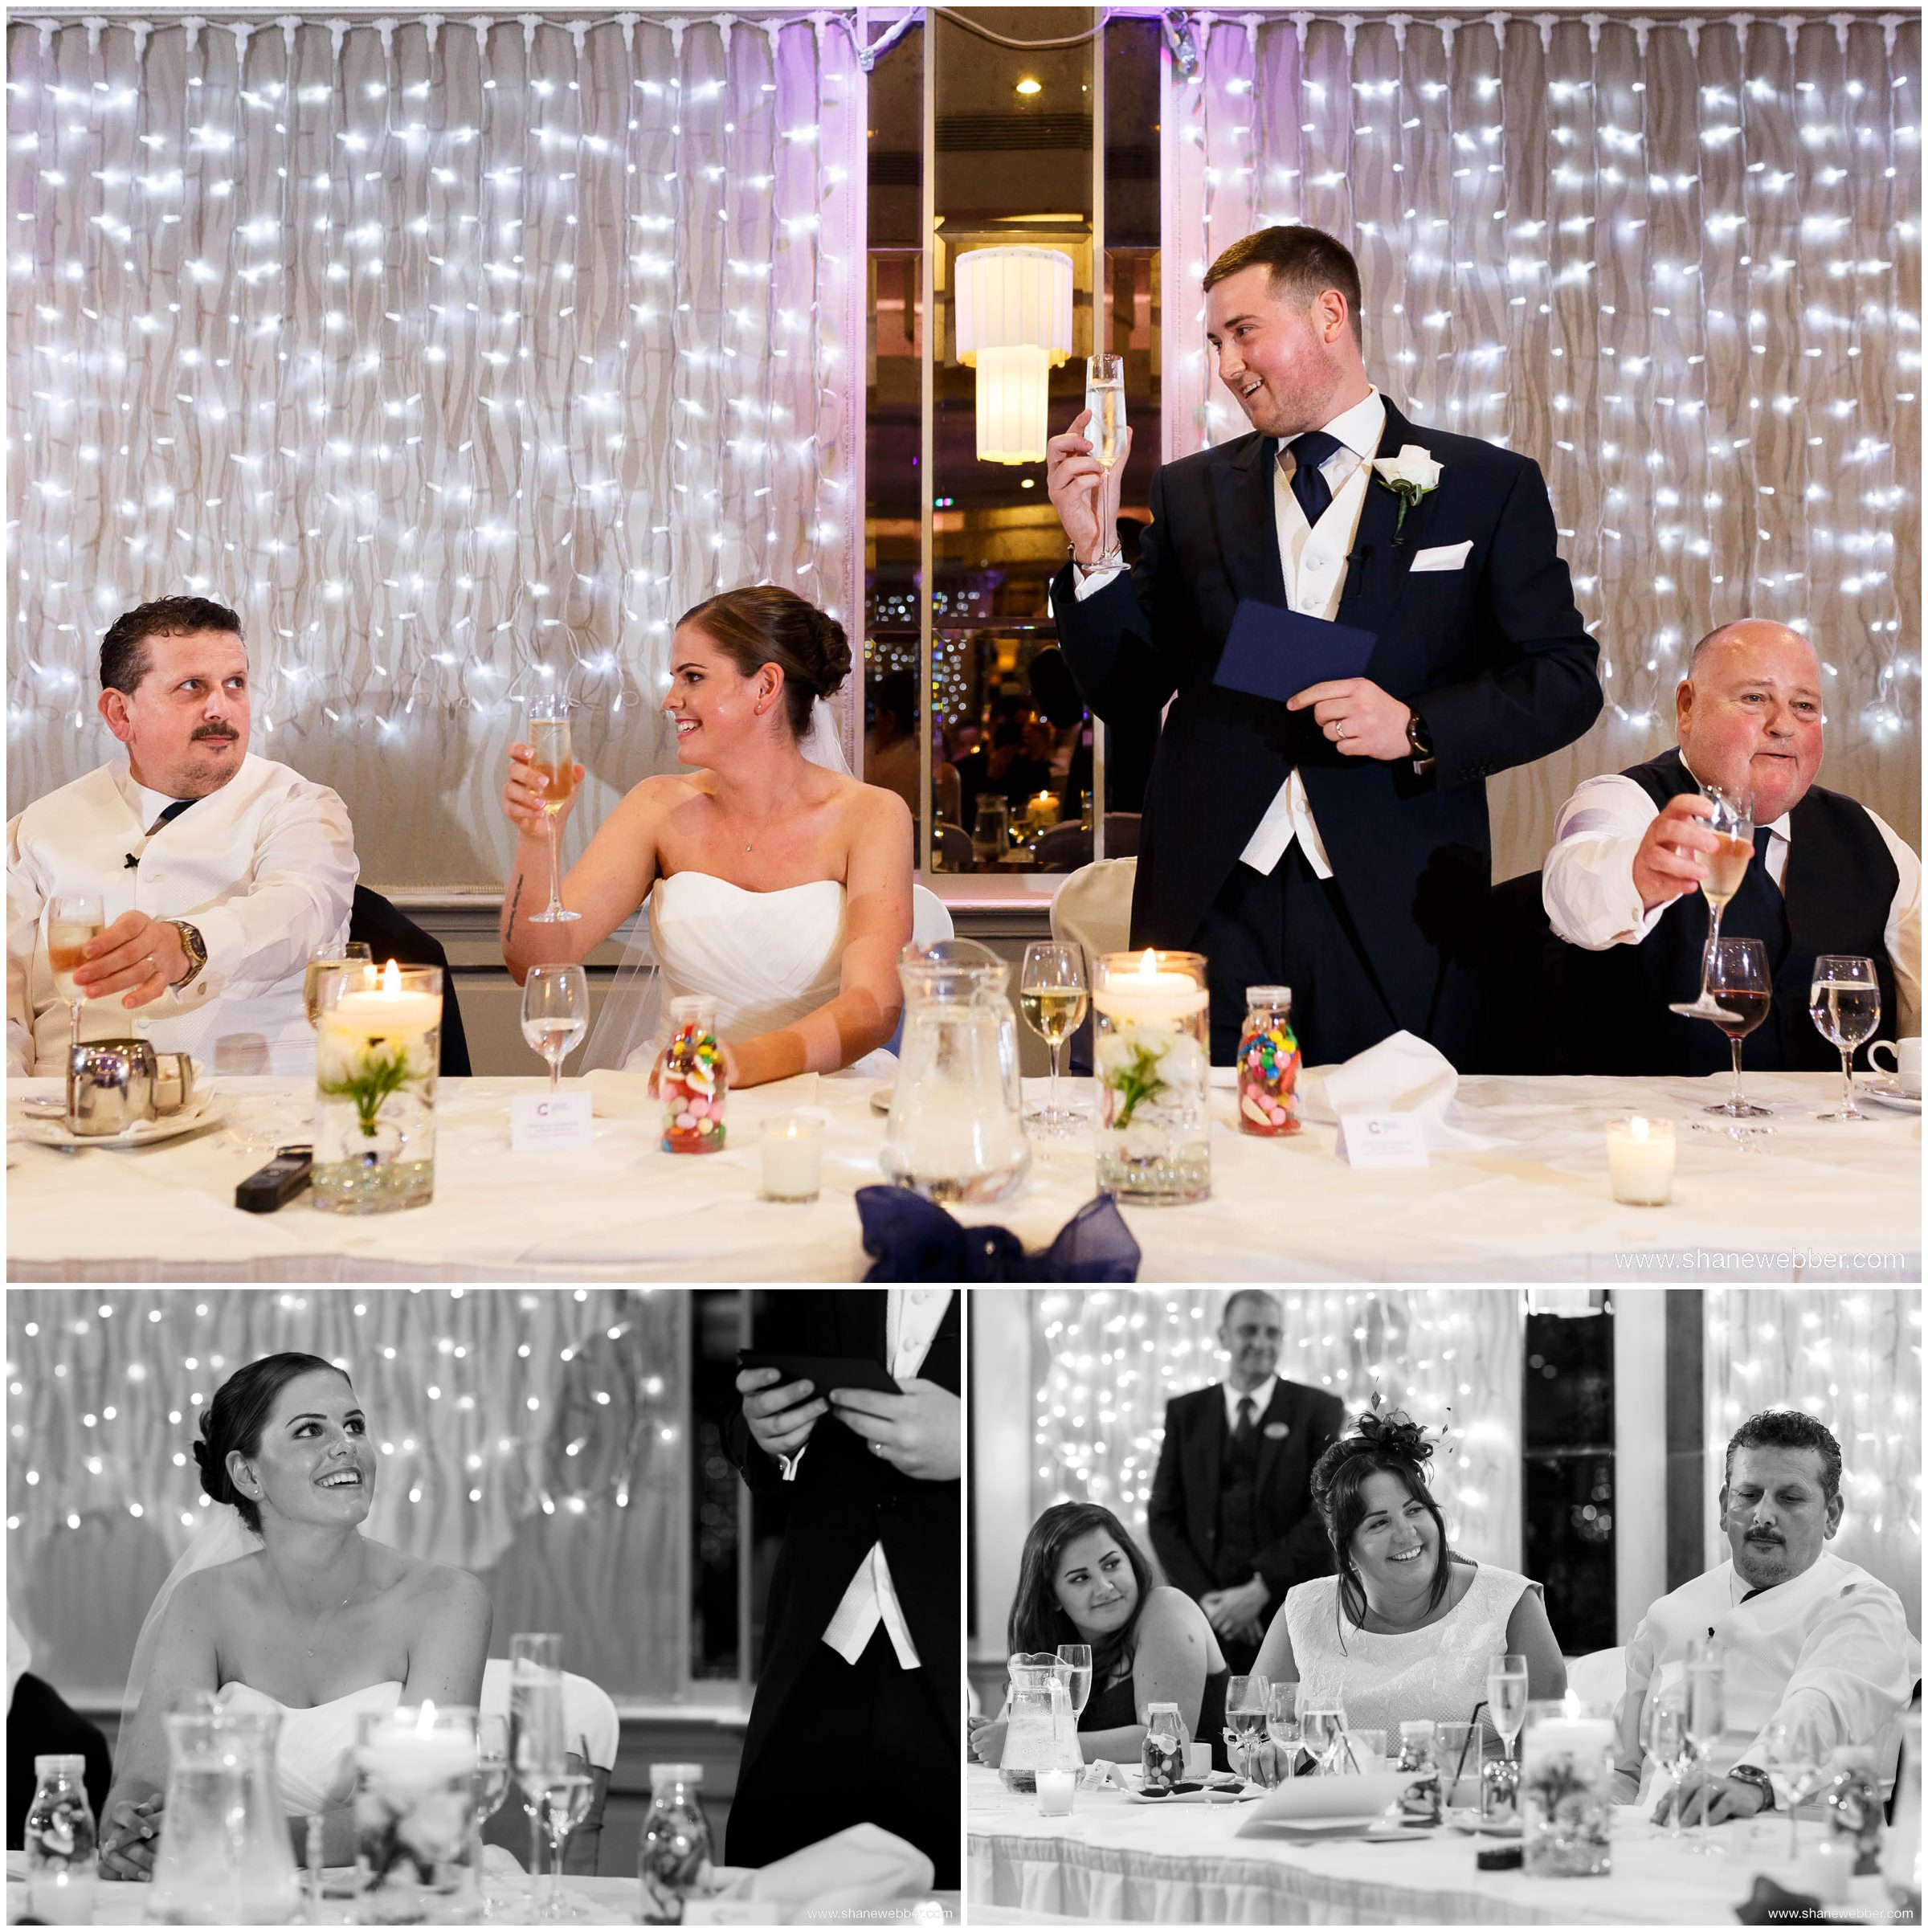 Wedding speeches at the Grosvenor Hotel in Pulford